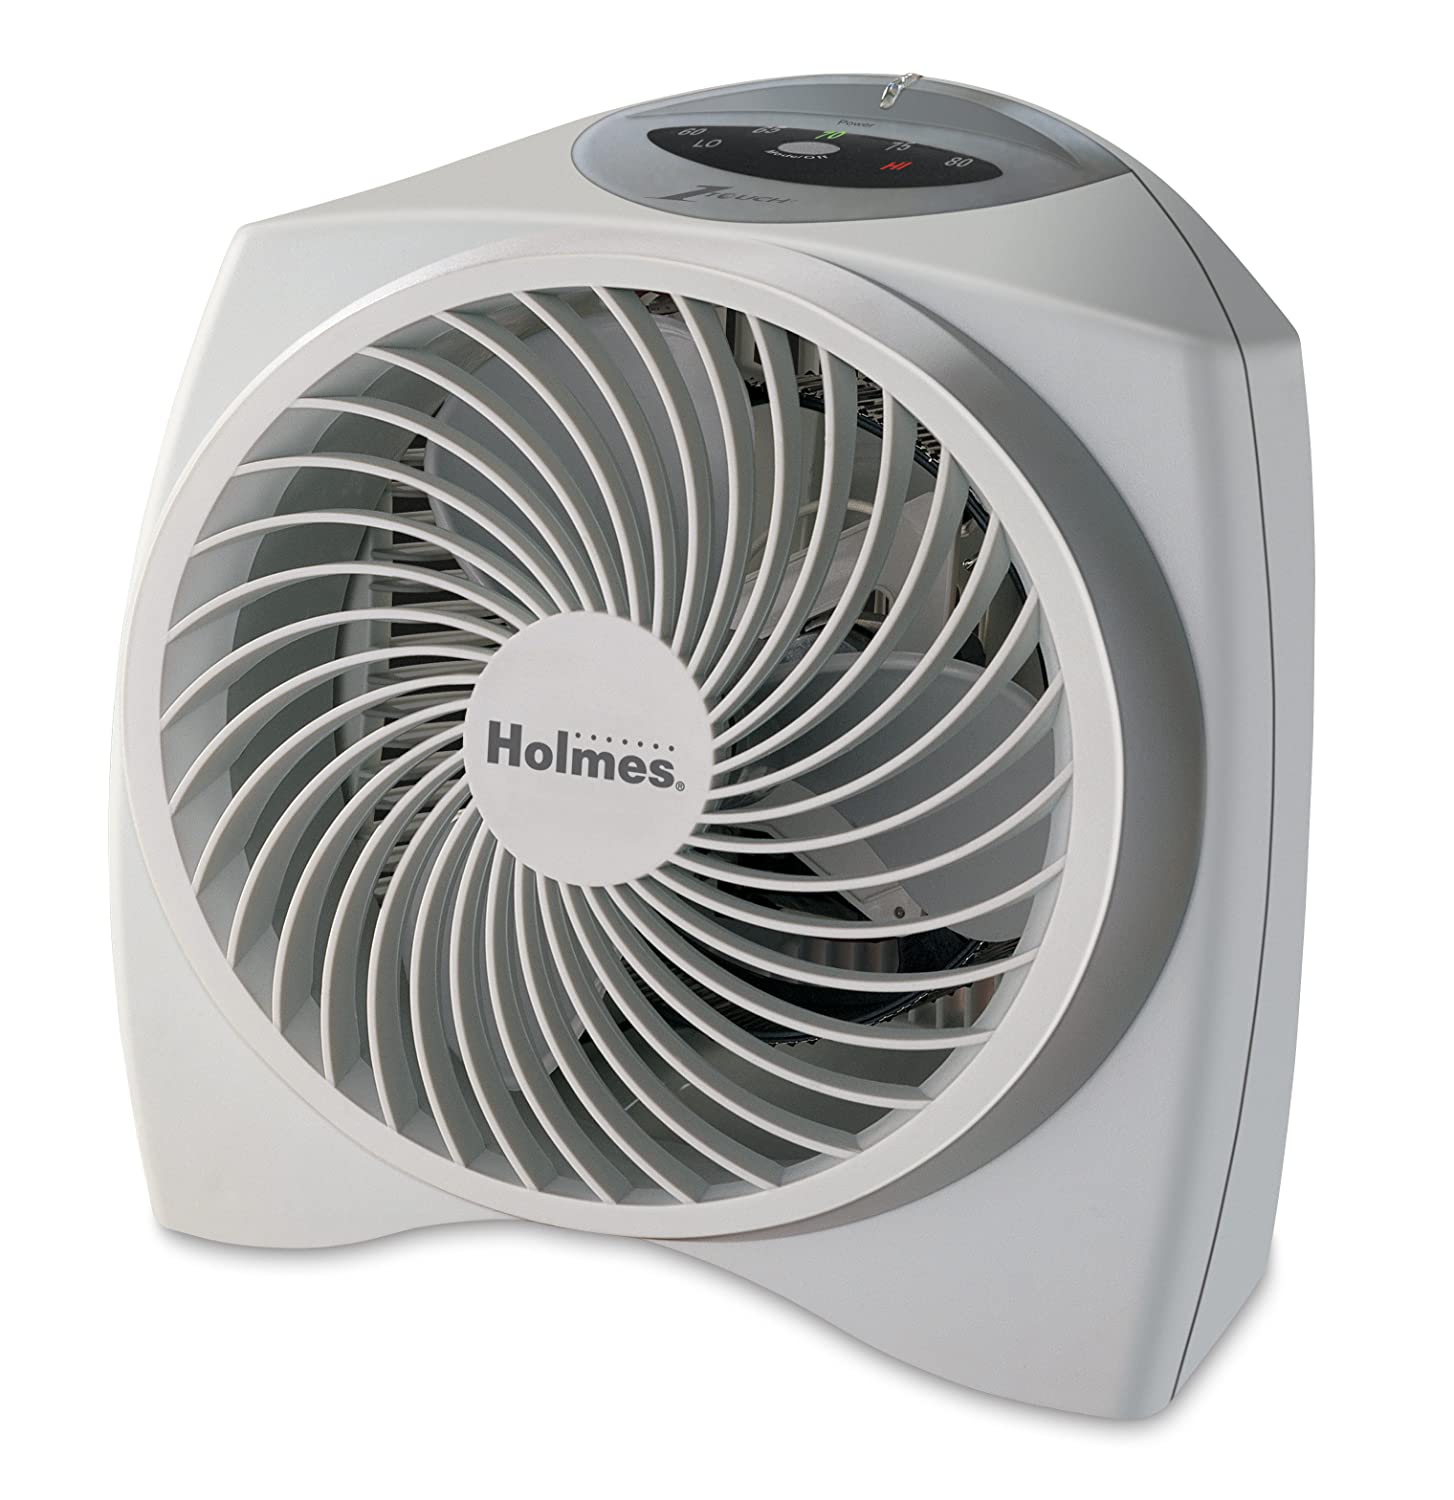 Holmes Hfh2986 U Whisper Quiet Power Space Heater